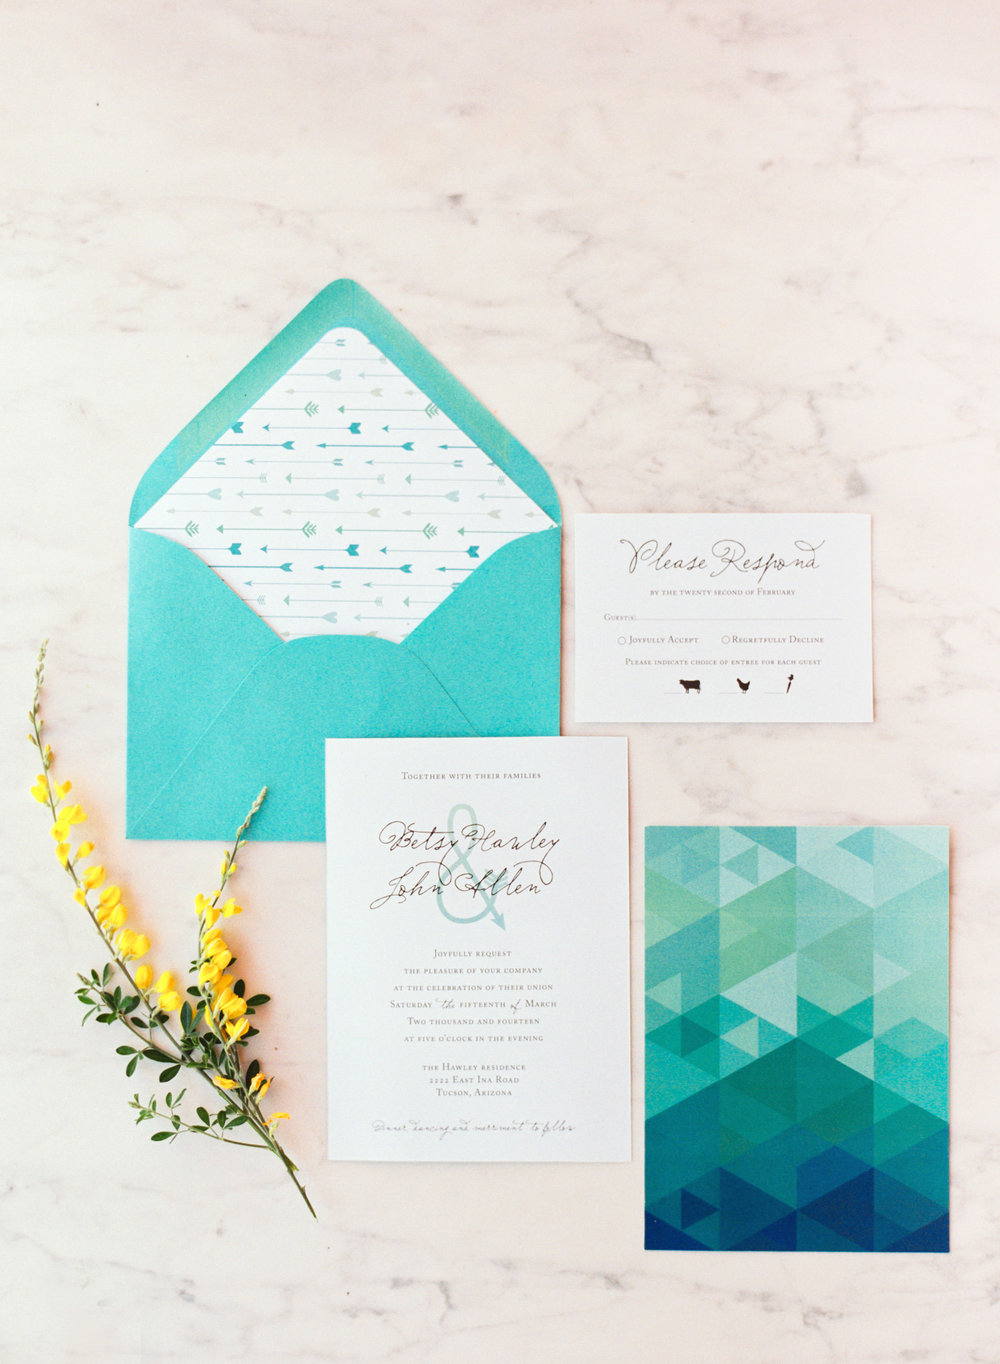 Teal wedding invitations designed by Betsy and John